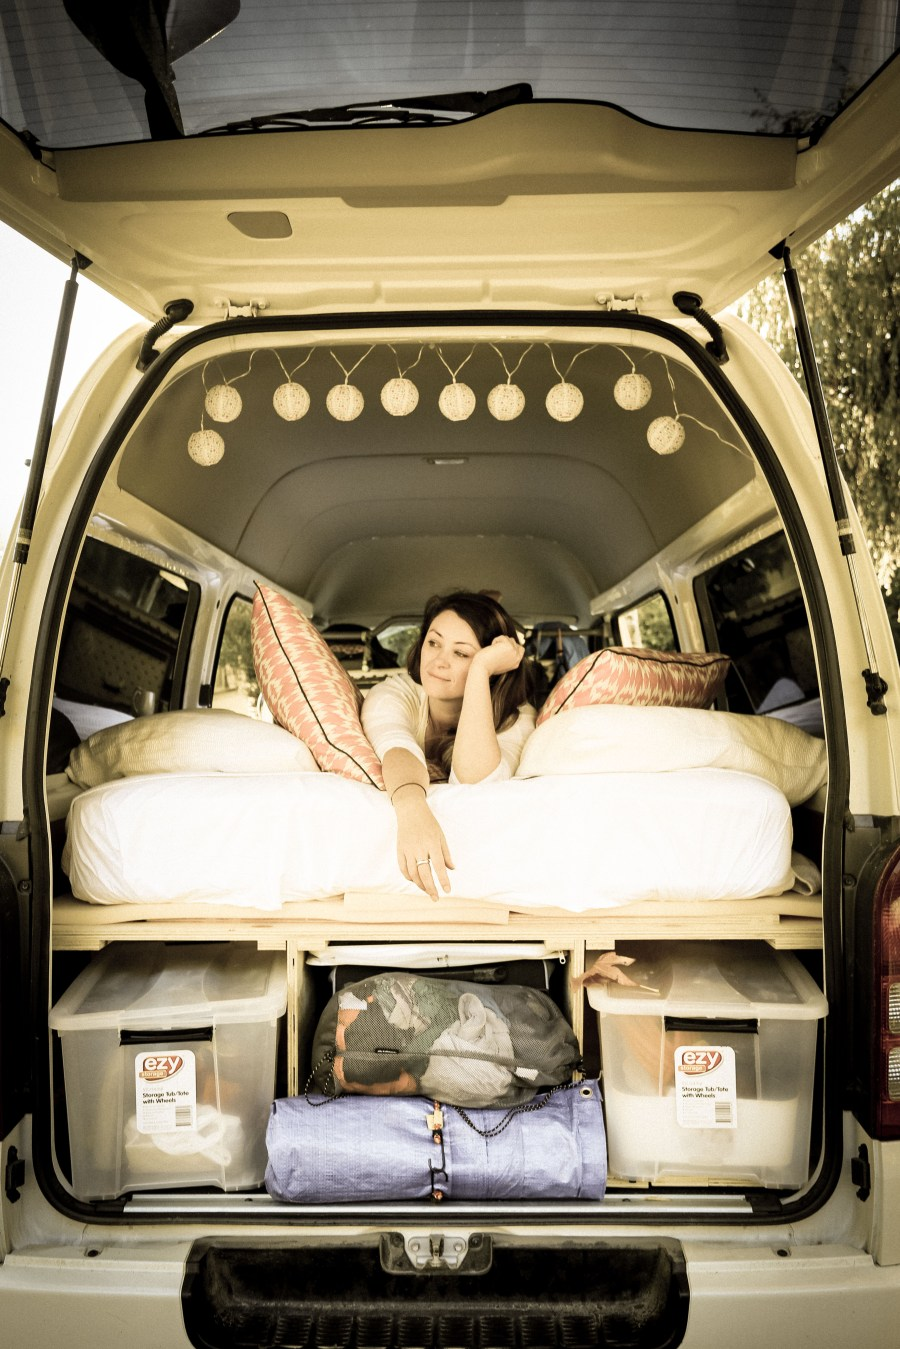 Our temporary campervan bed design for a Toyota Hiace – so you can make it, or make it better ...